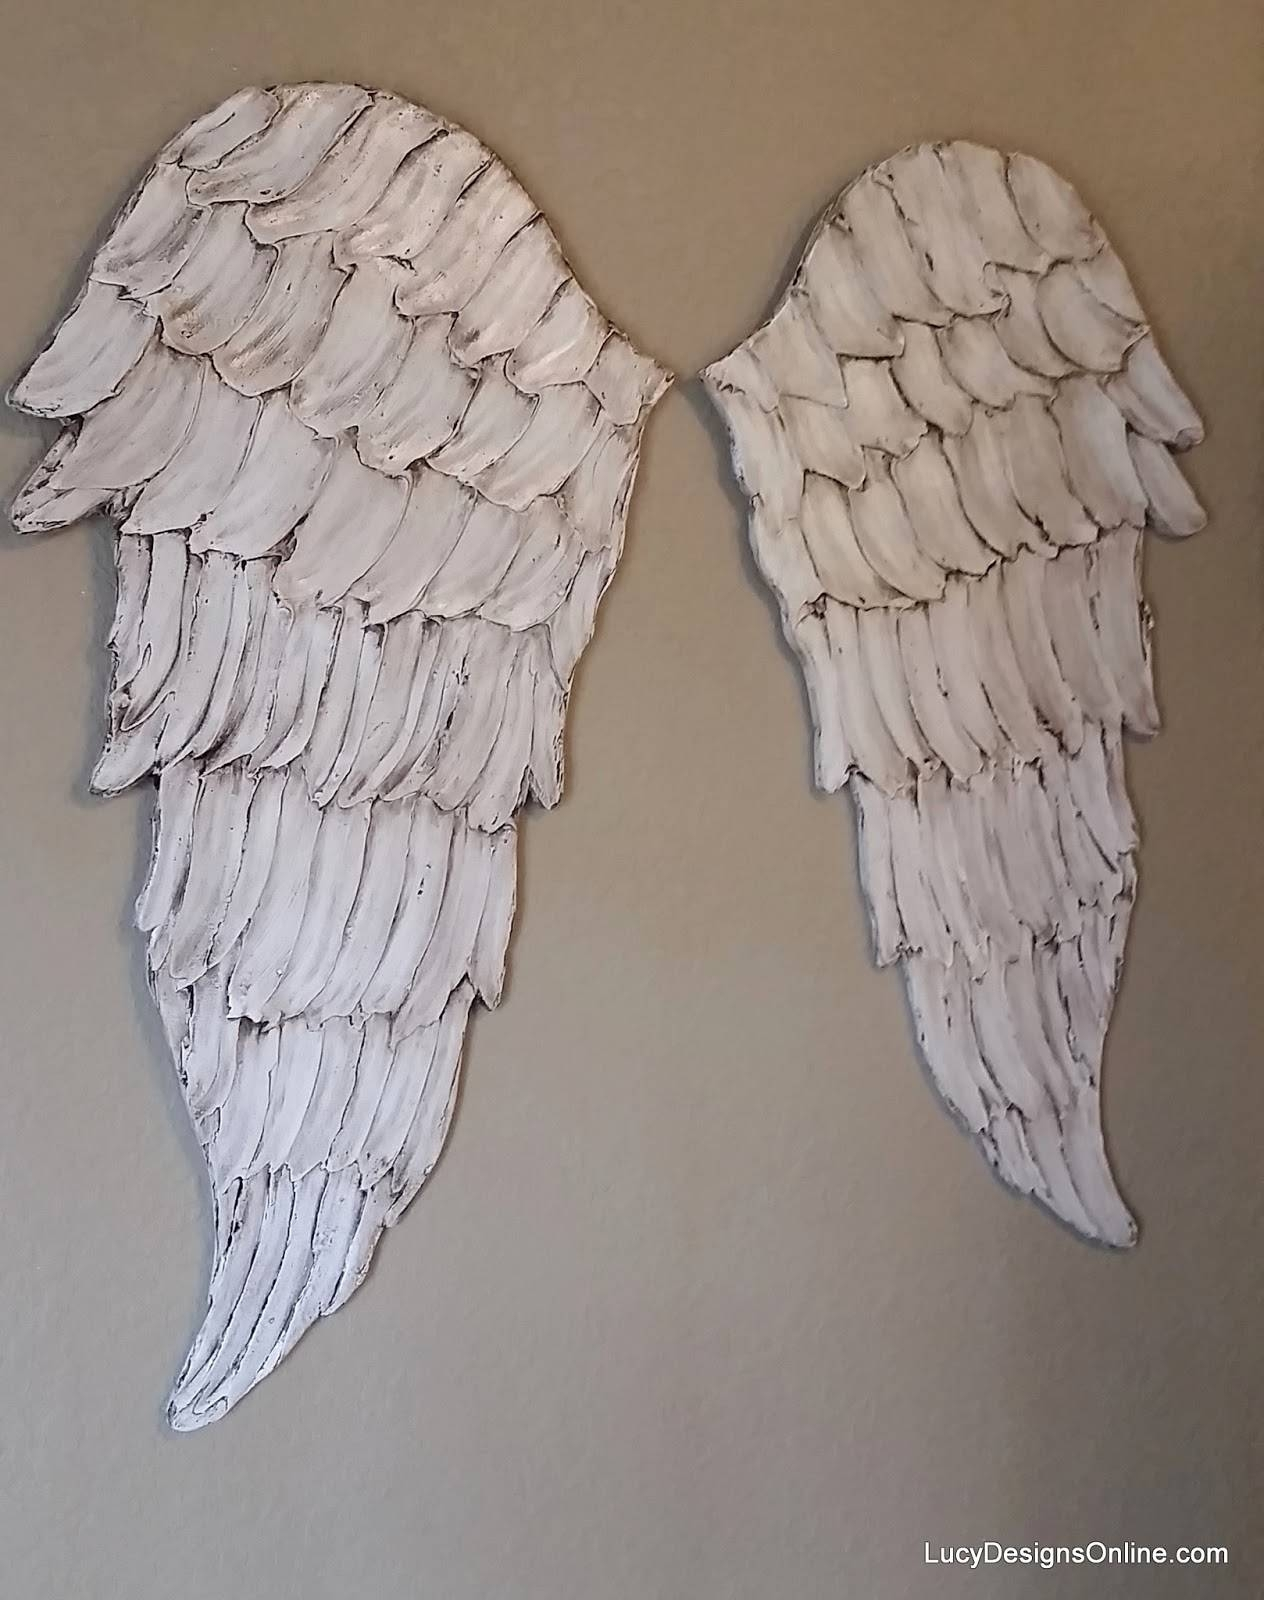 Angel Wings Textured Wood, Wall Art, Carved Wood Look, Angel Wing Pertaining To Most Current Angel Wings Wall Art (View 17 of 20)